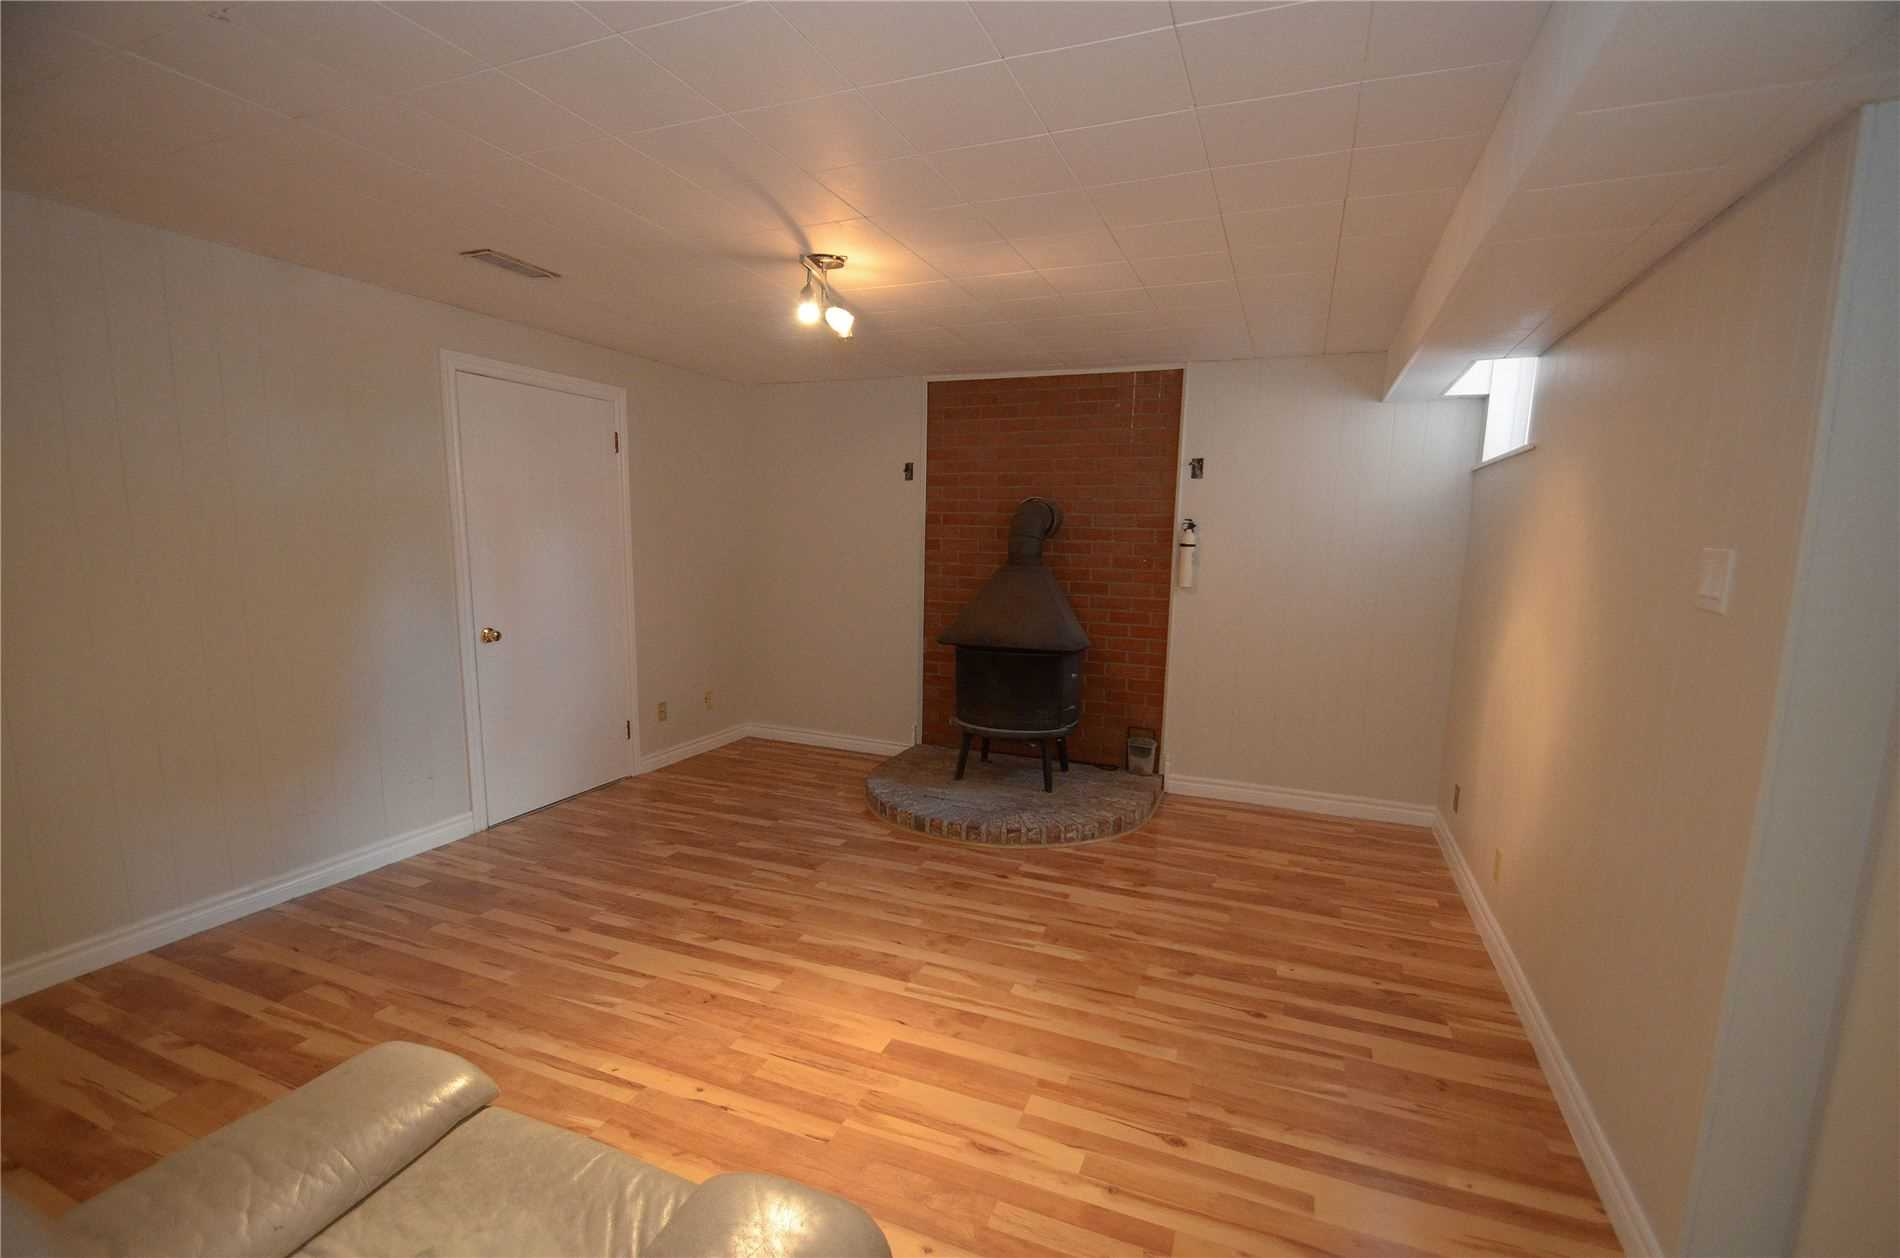 Image 4 of 9 showing inside of 3 Bedroom Detached Bungalow for Lease at 6 Mullet Rd, Toronto M2M2A6